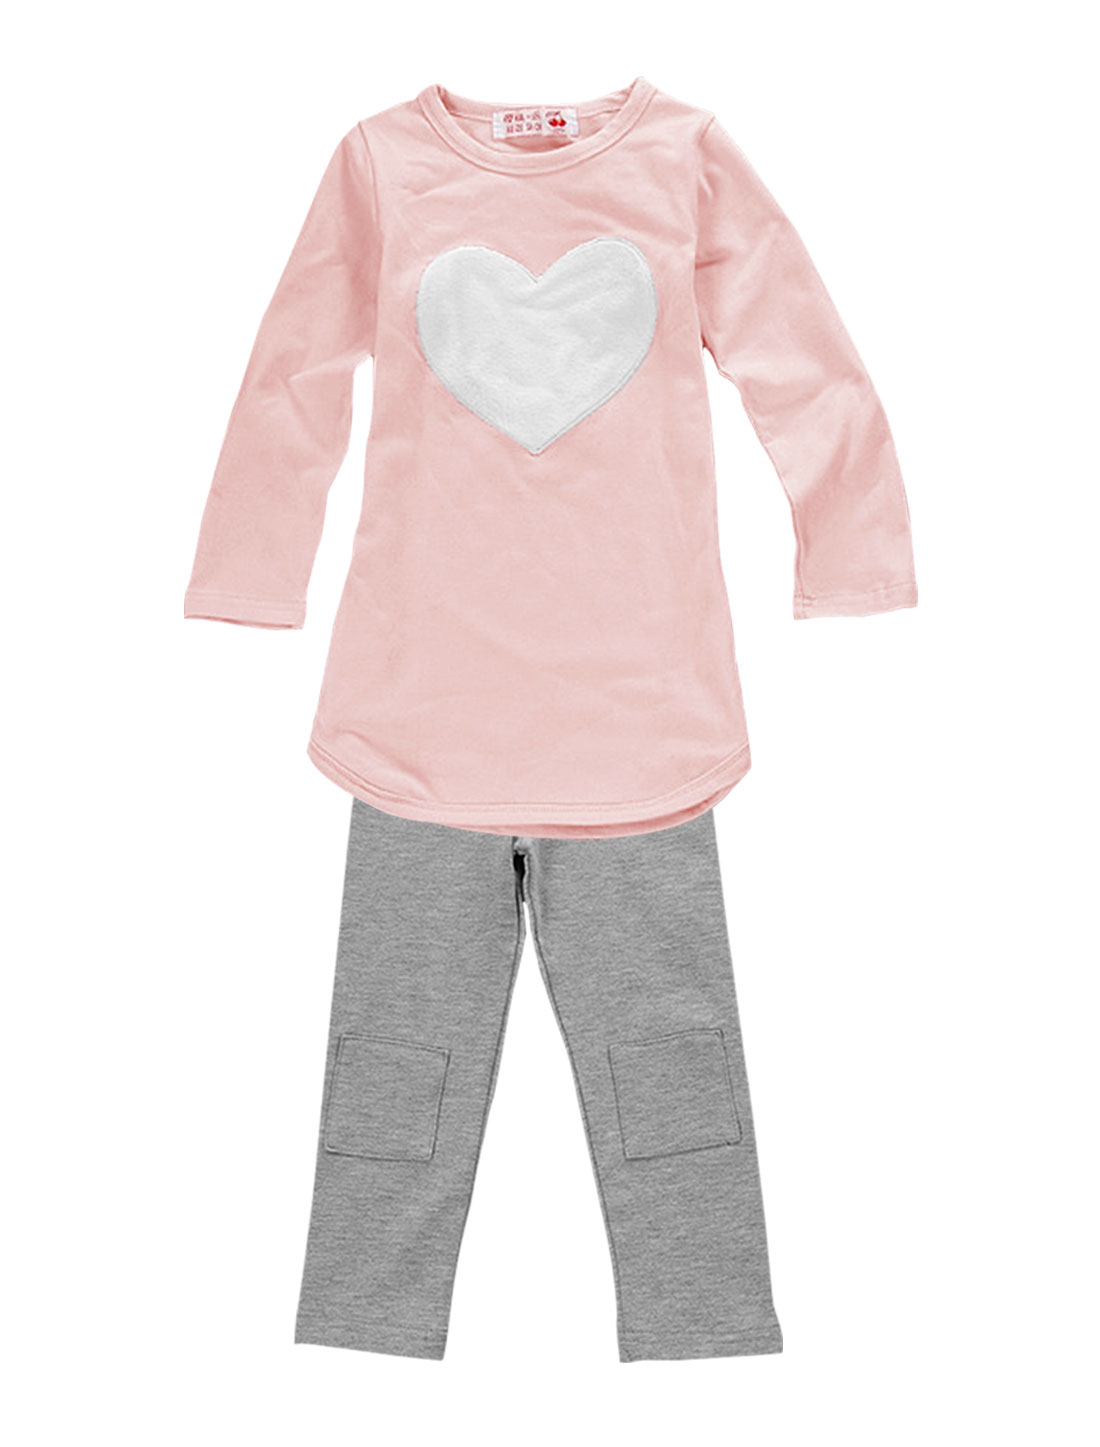 Girls Heart Shape Panel Top w Elastic Waist Pants 3-Pieces Sets Pink Gray 2T